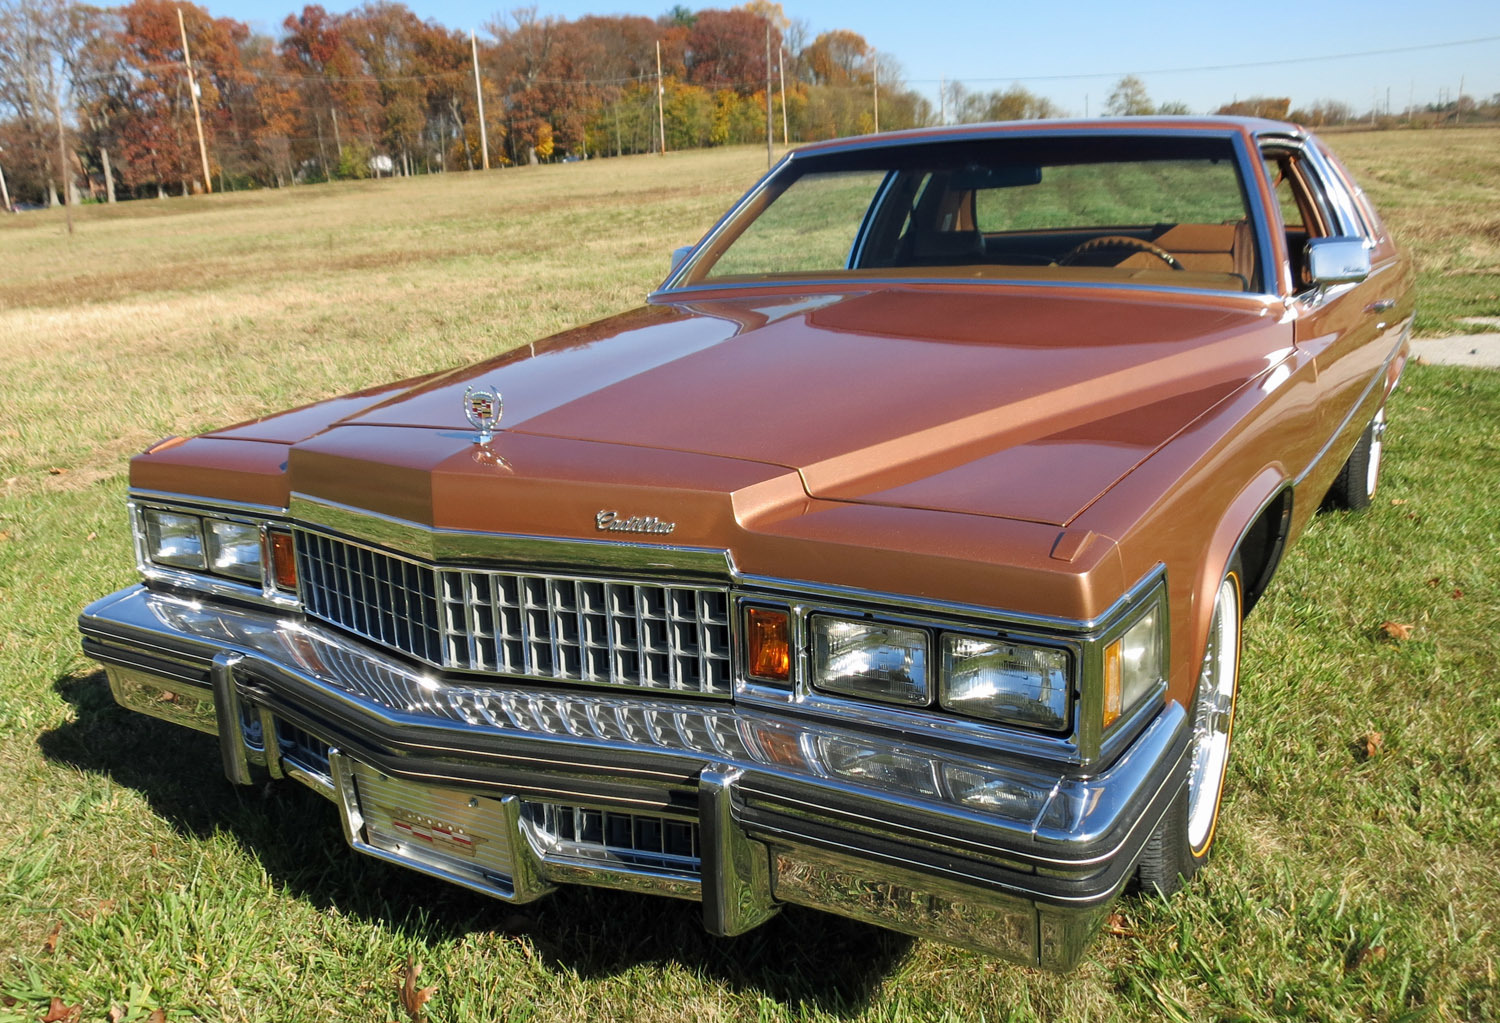 1978 Cadillac Coupe DeVille